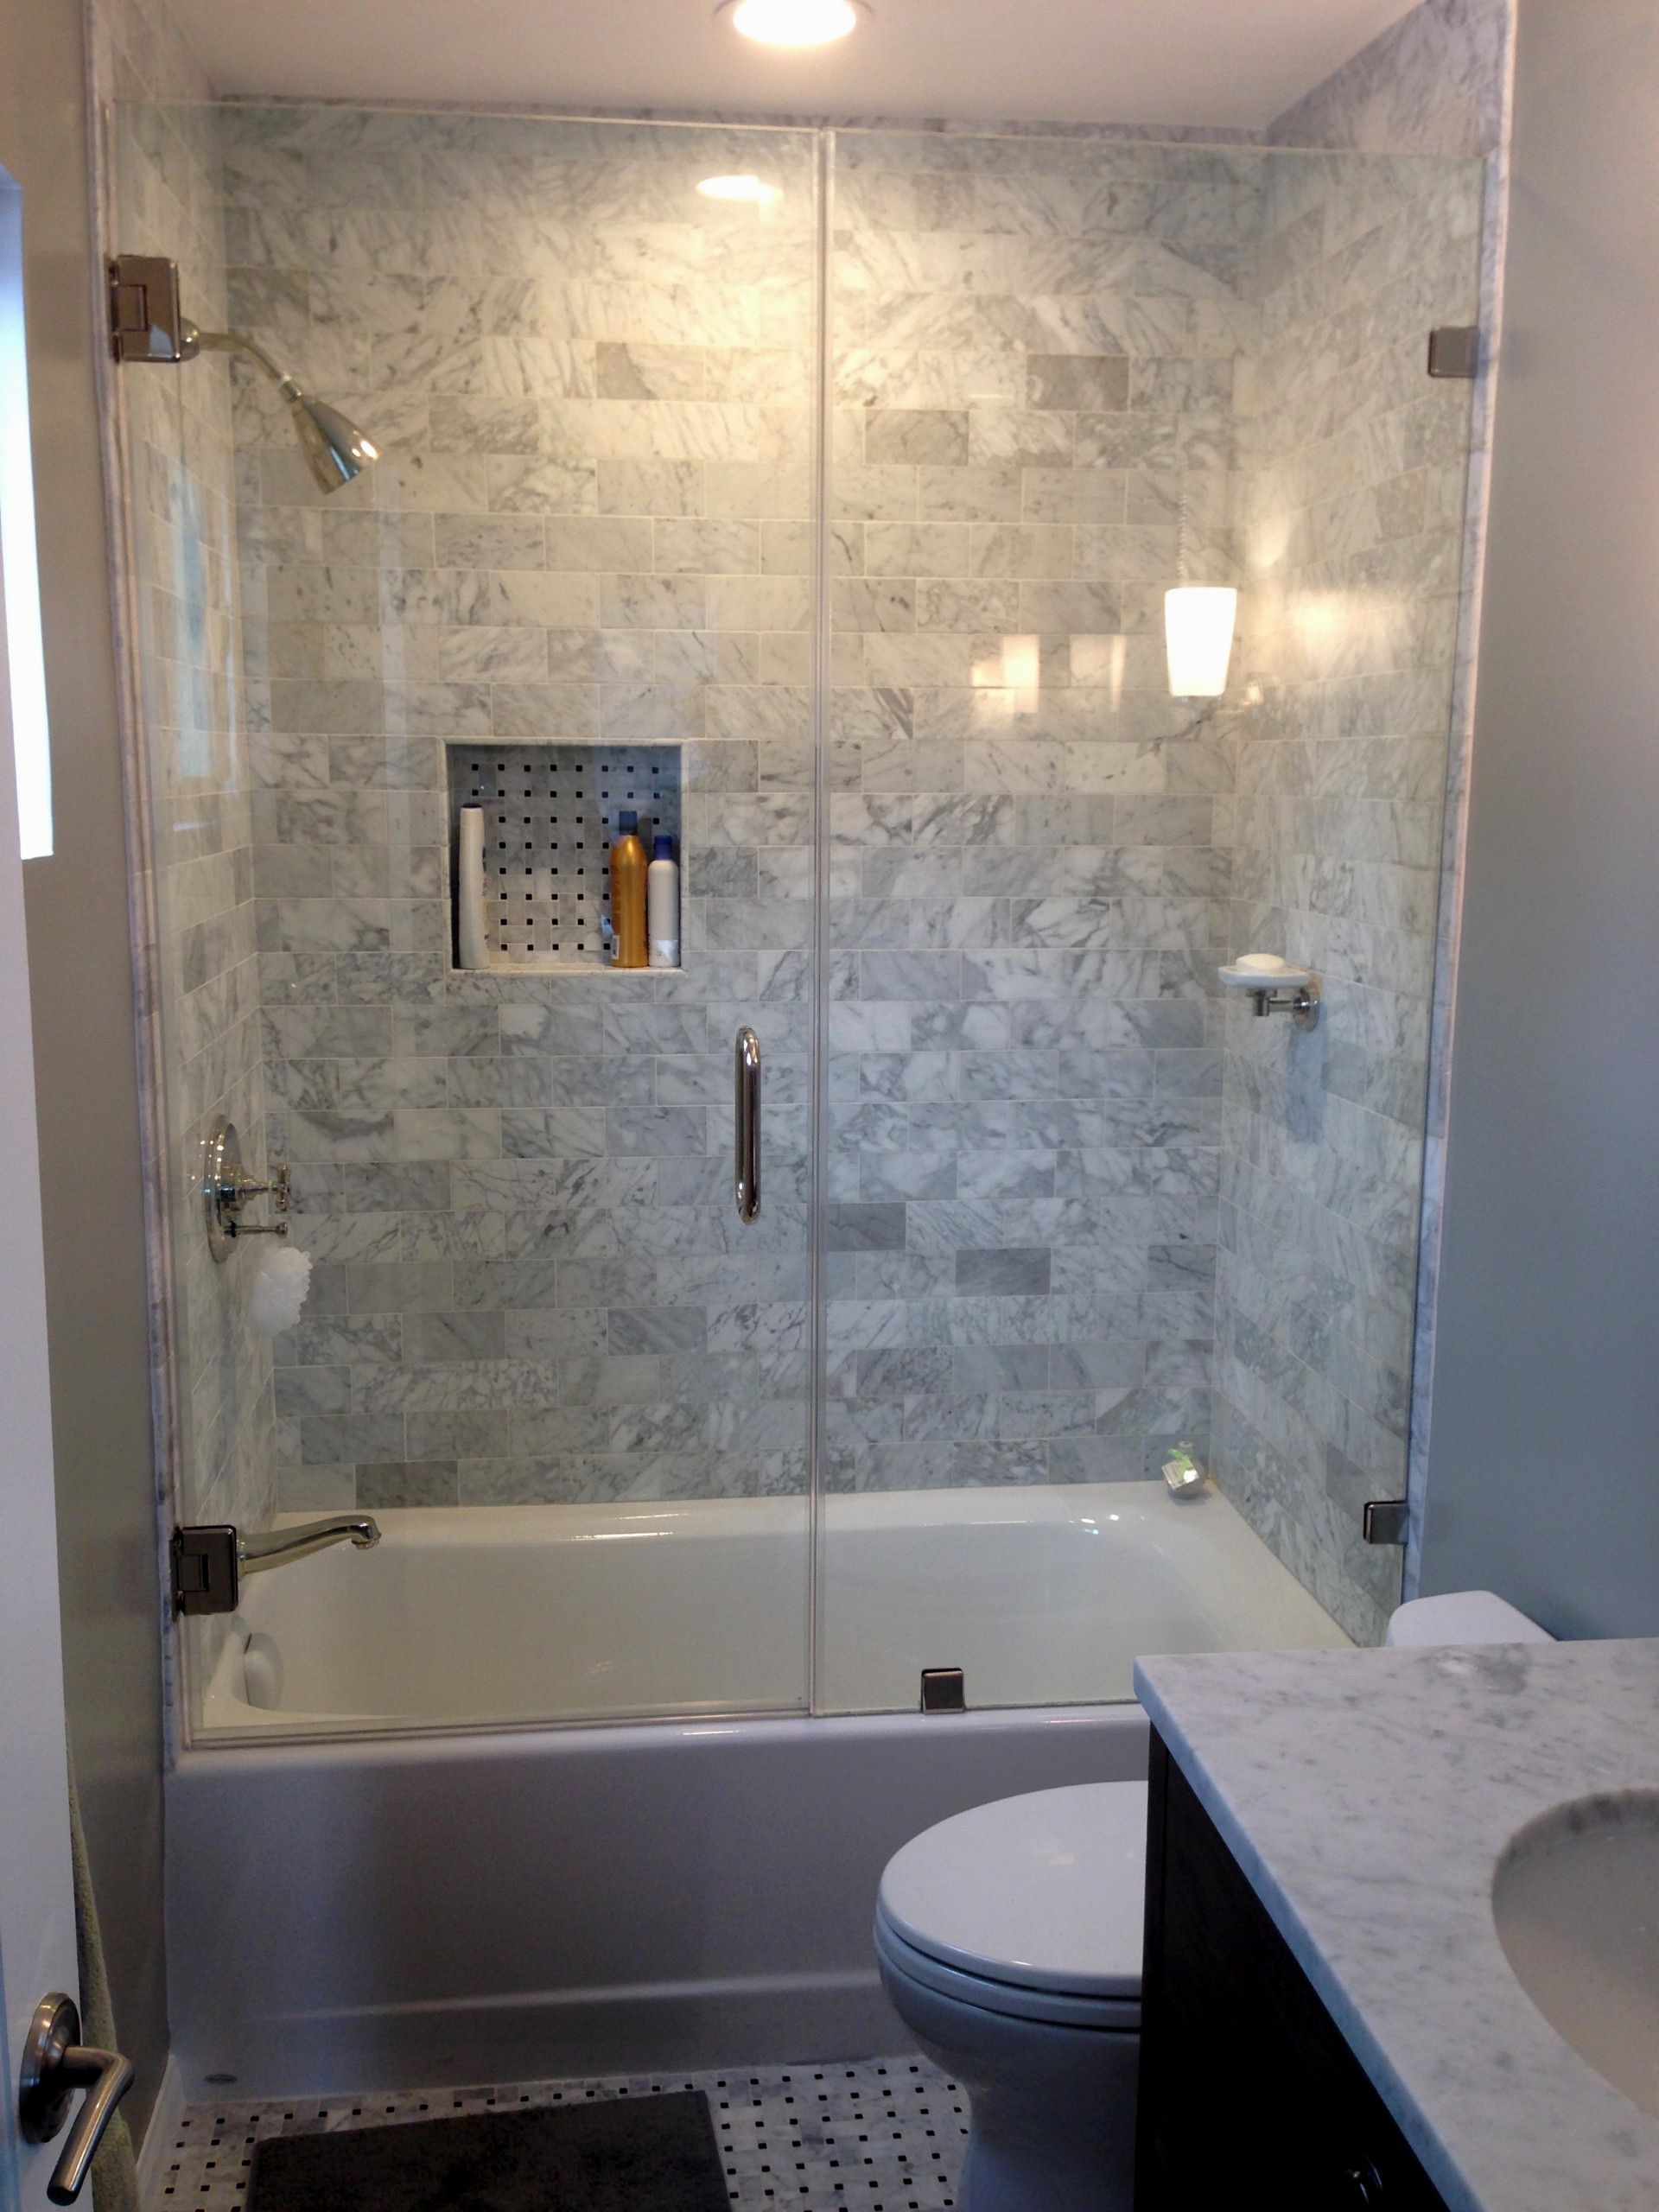 fantastic bathroom remodel pictures inspiration-Lovely Bathroom Remodel Pictures Online